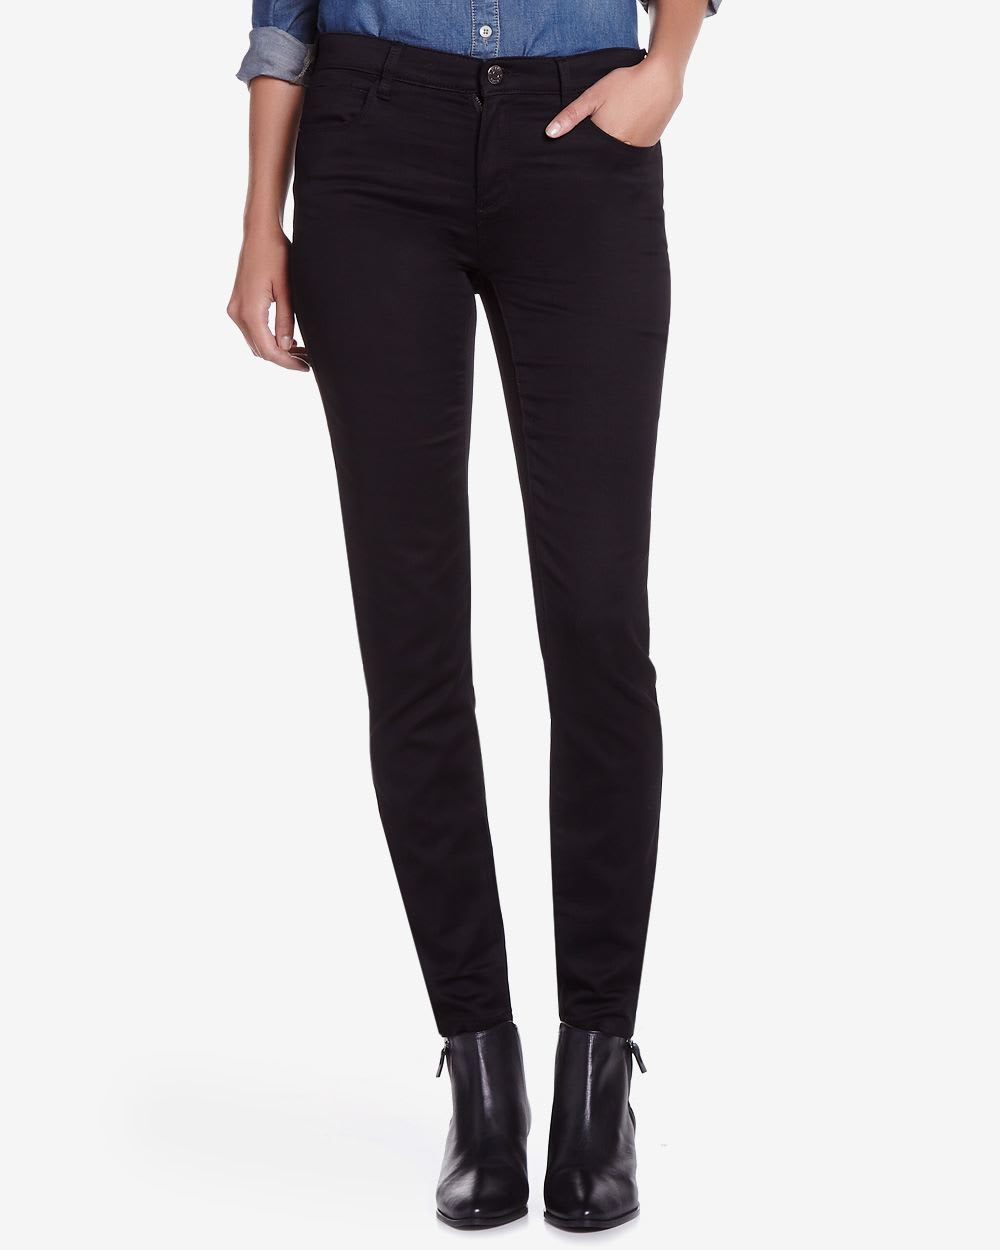 Skinny Super Soft Jeans | Women | Reitmans